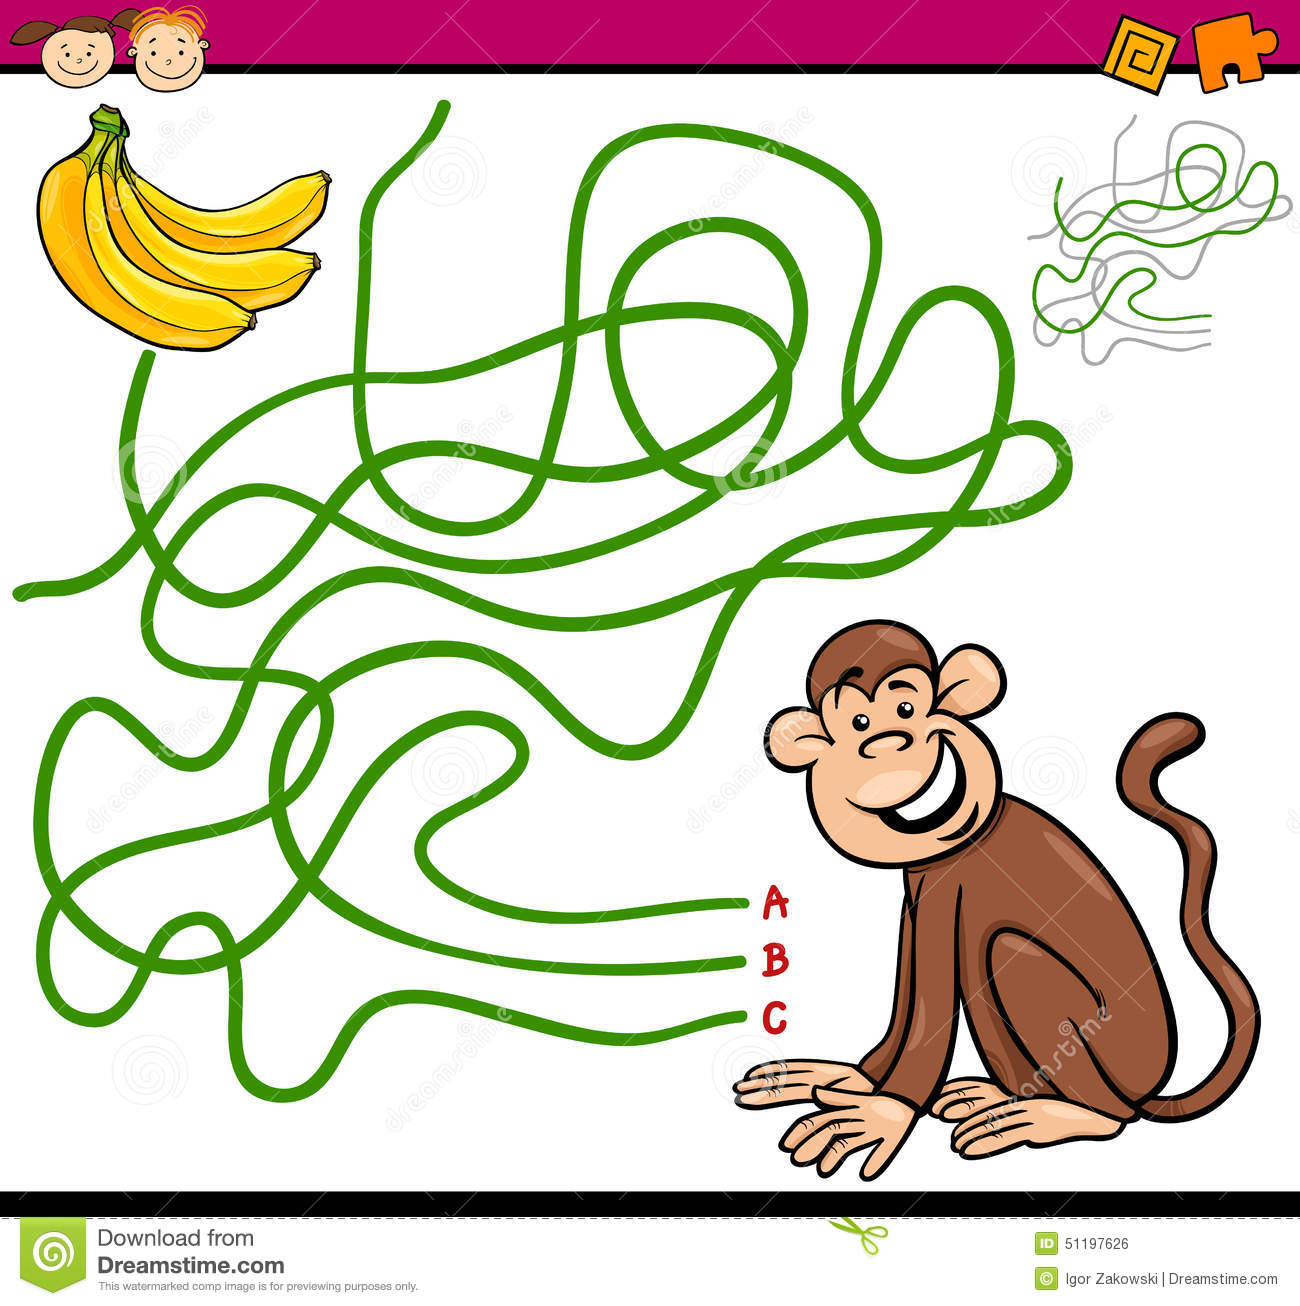 Maze Game Preschool Children Monkey Stock Illustrations – 79 Maze ...